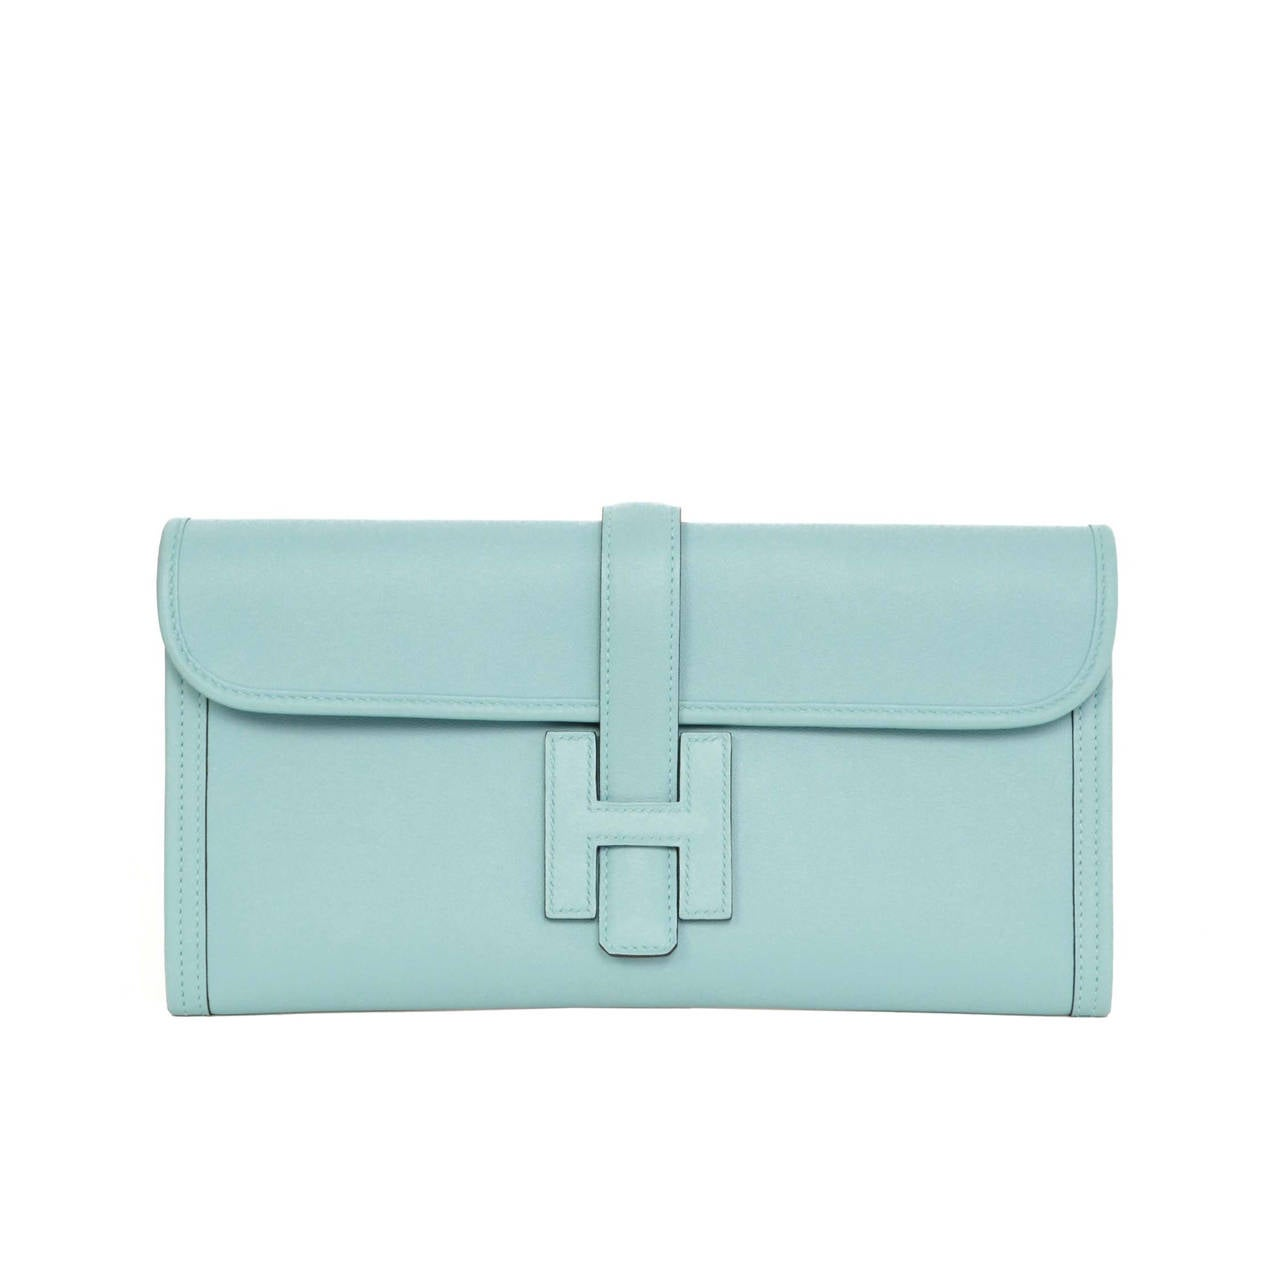 HERMES \u0026#39;15 Blue Atoll Swift Leather 29cm Jige Elan Clutch Bag at ...